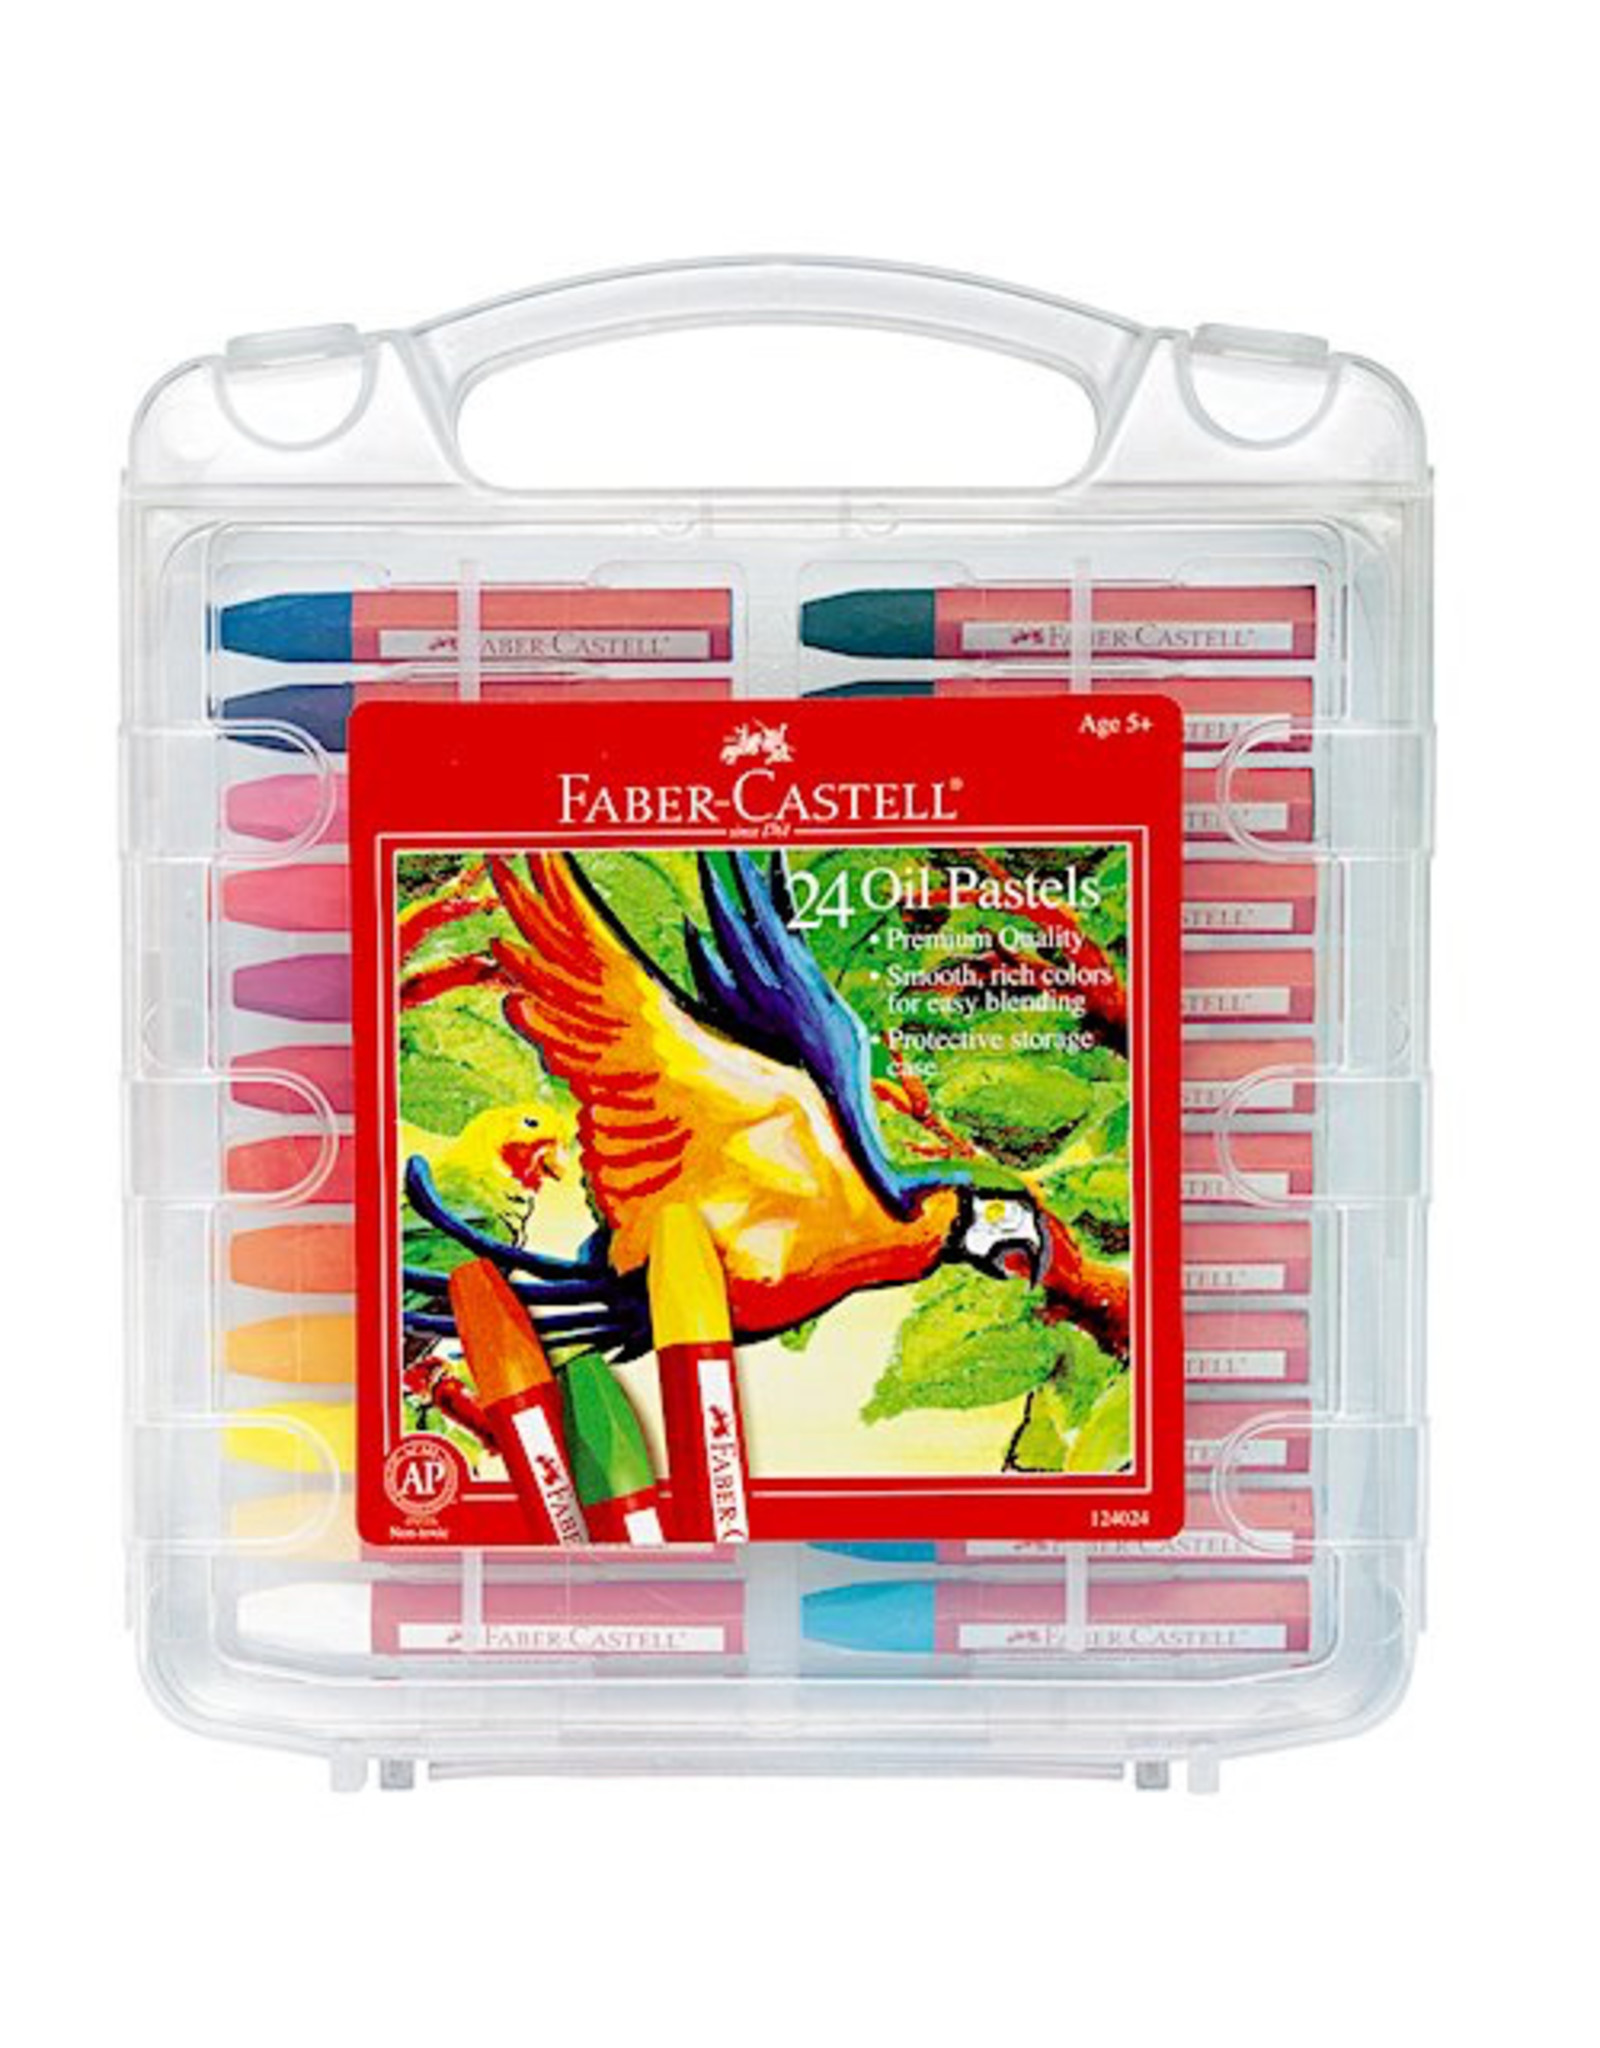 Faber Castell 24ct Oil Pastels